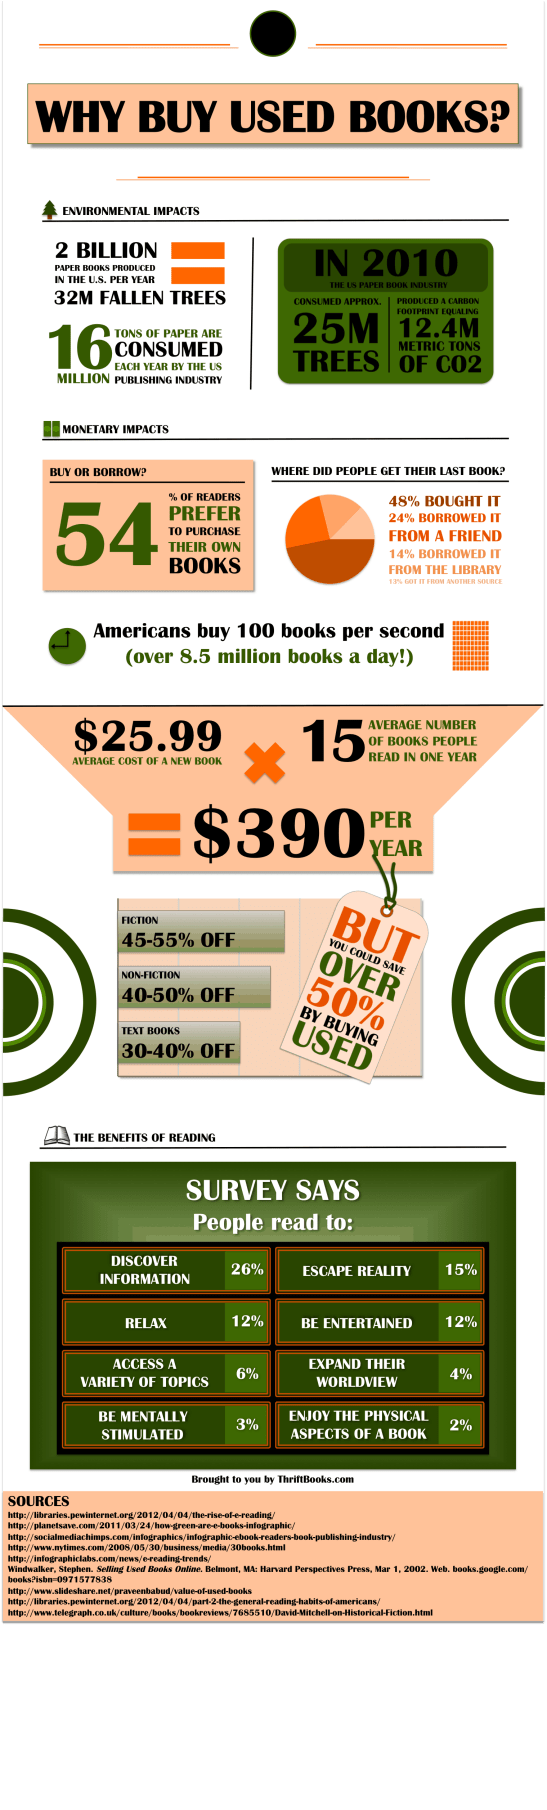 Infographic: Why Buy Used Books? AAP Infographic